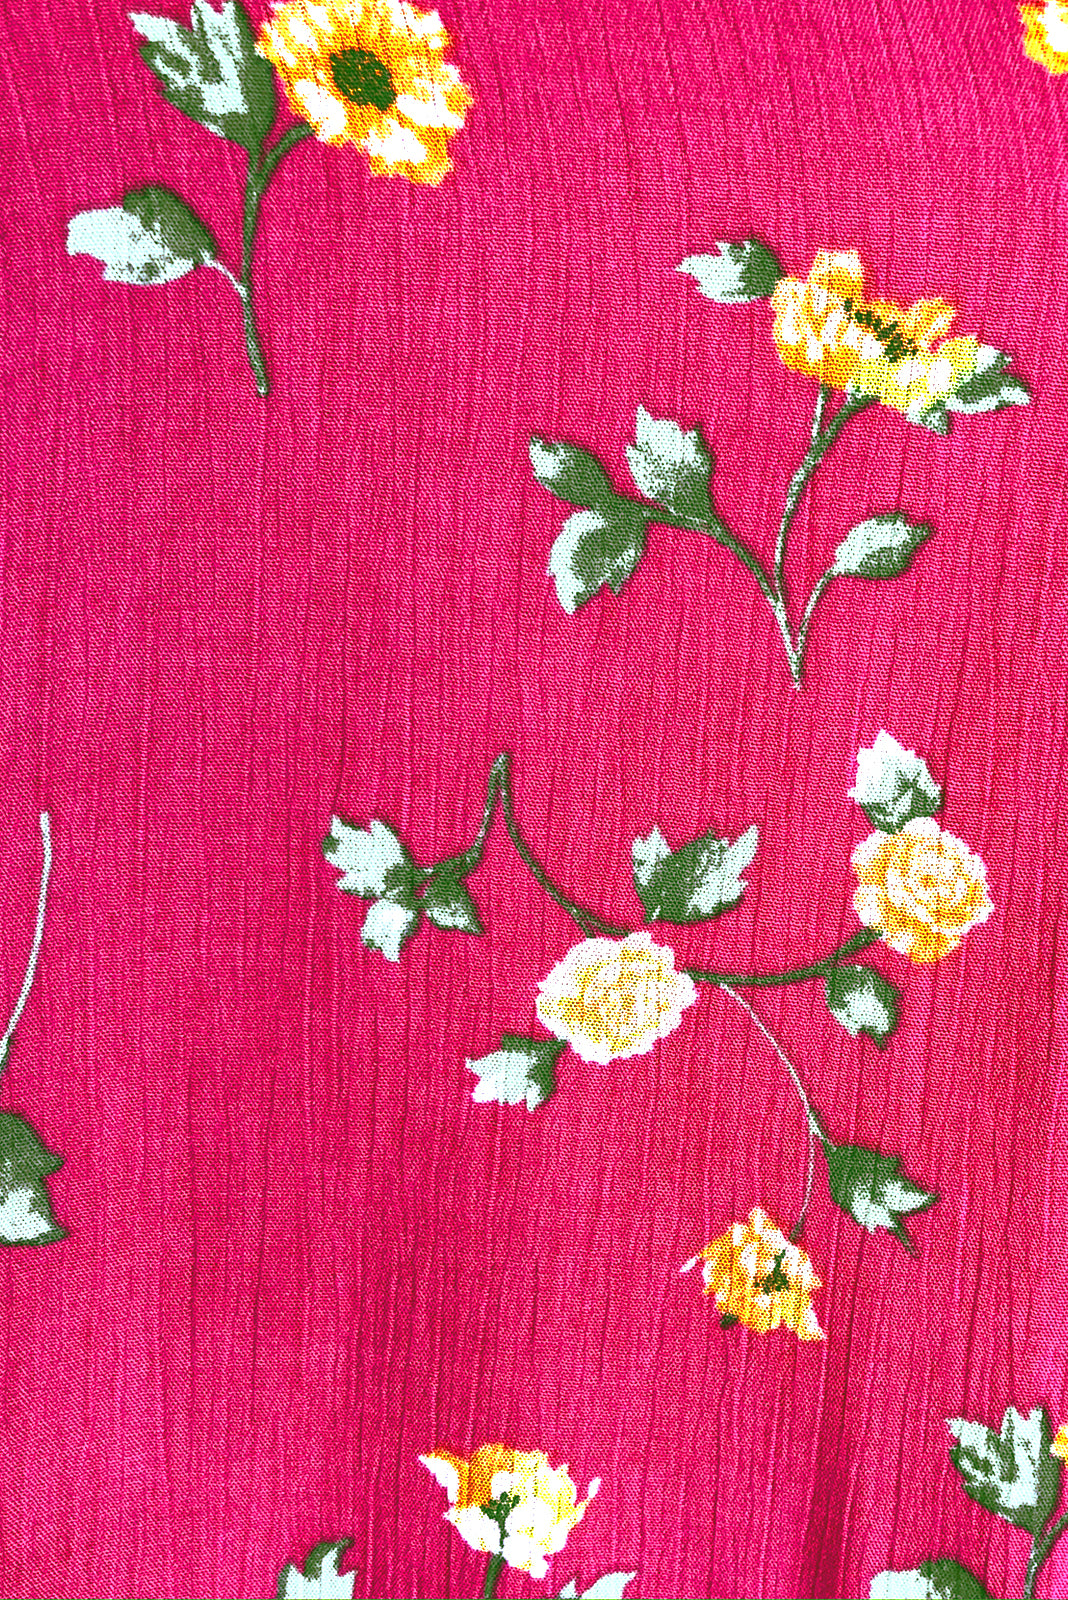 Fabric swatch of Cinnamon Cerise Scatter Maxi Wrap Dress featuring  100% crinkle texture rayon in cerise pink base with amber toned floral print.